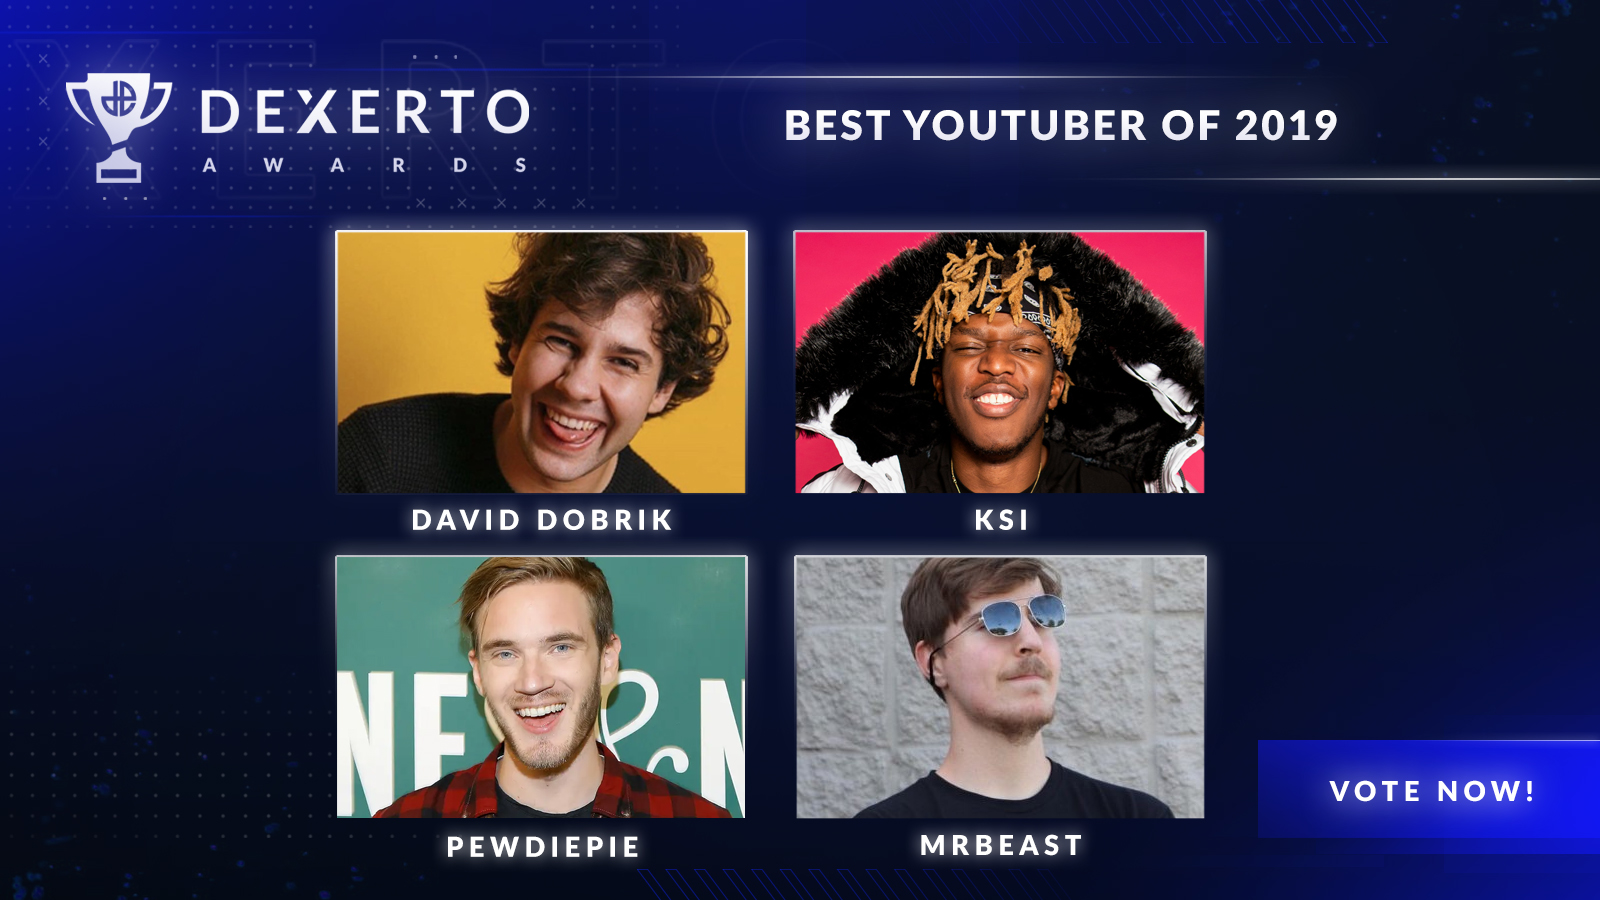 The four best YouTubers of 2019